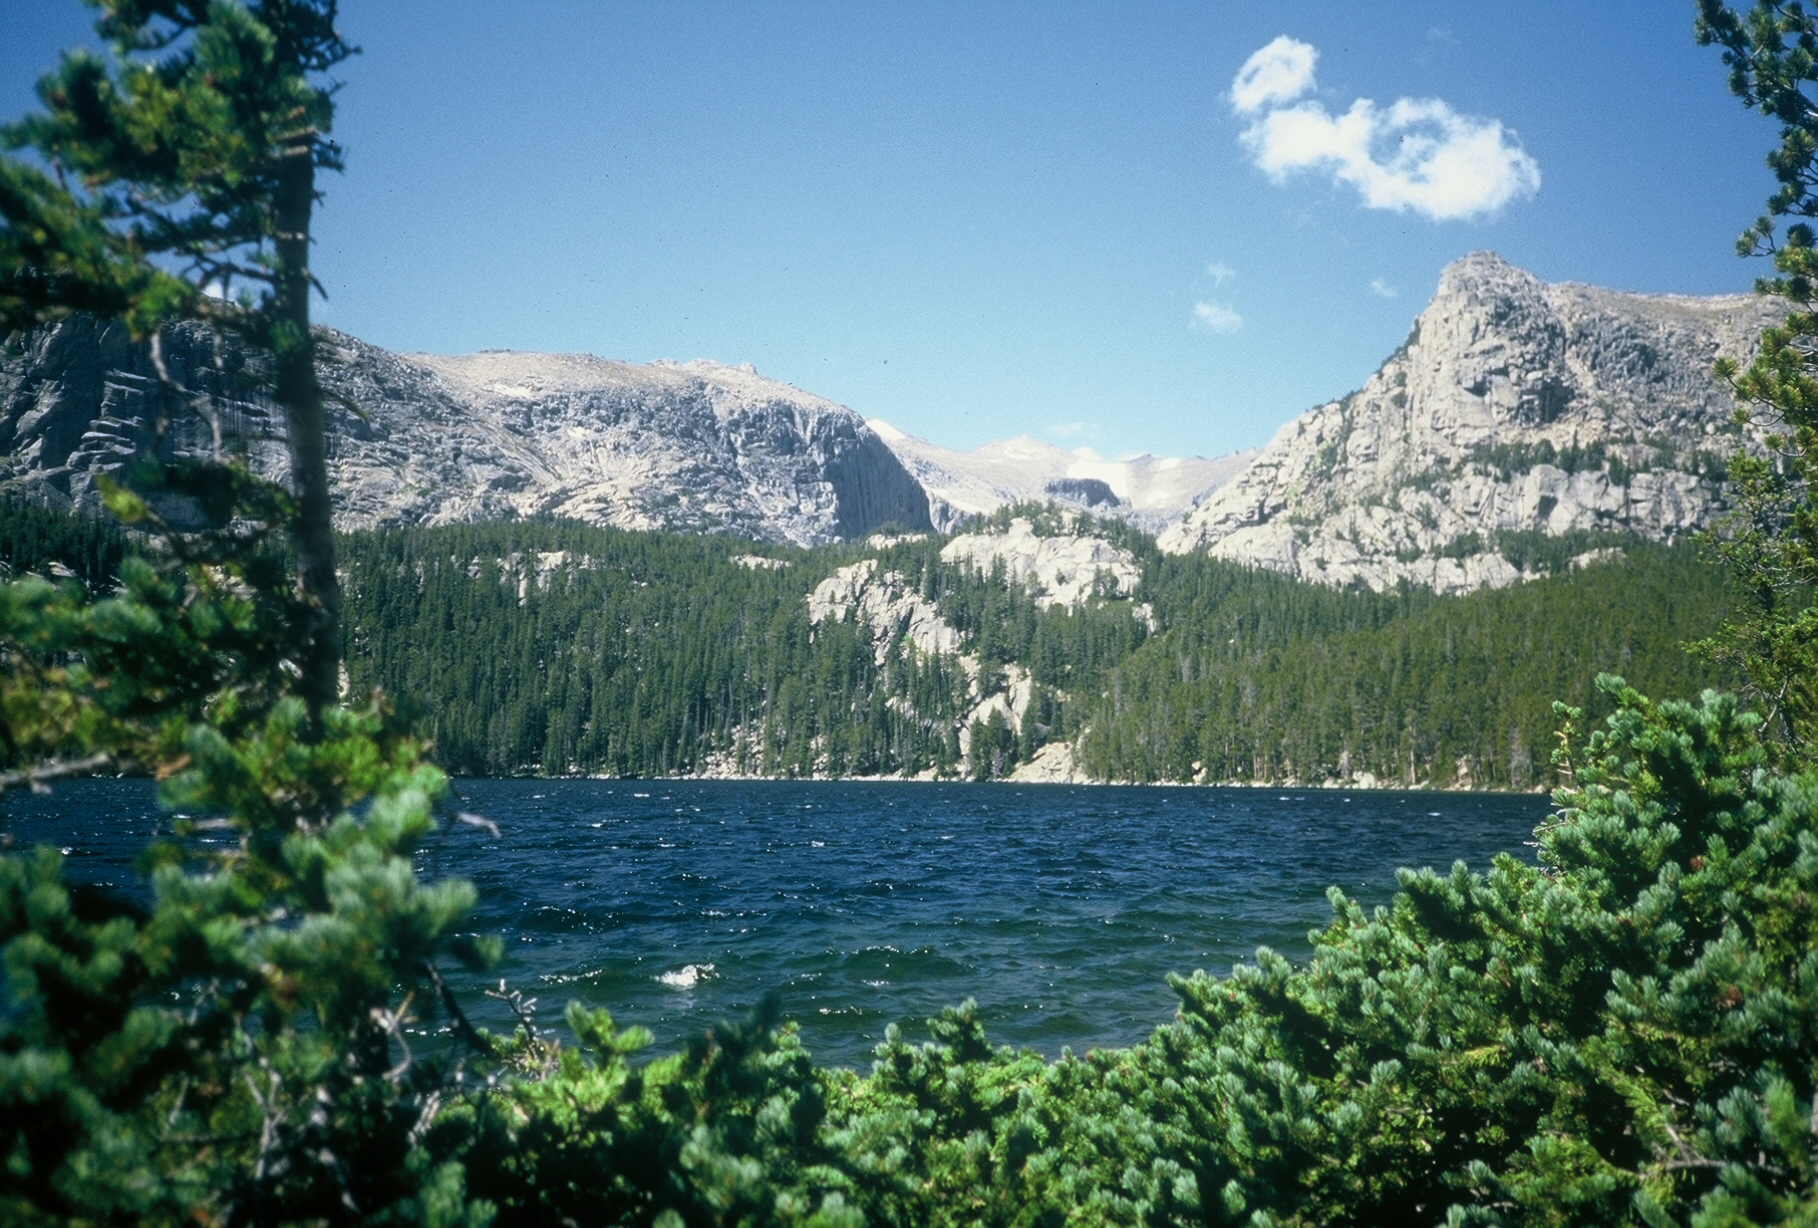 The shores along the lakes in the Popo Agie Wilderness make great campsites.